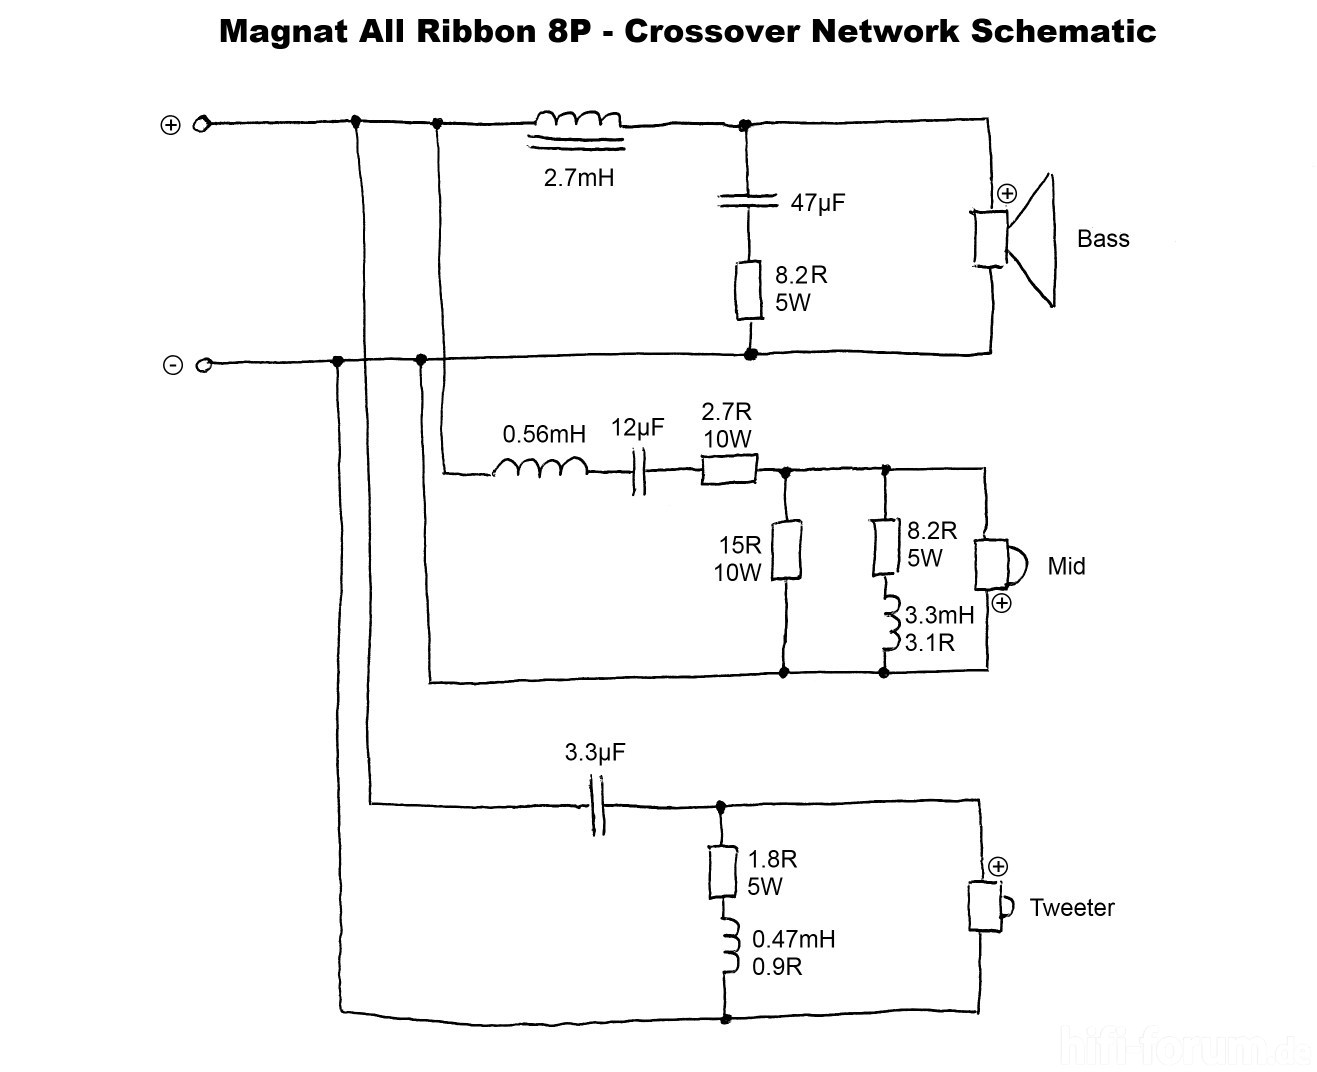 Magnat All Ribbon 8P Crossover Network Schematic Marked | 8p ... on